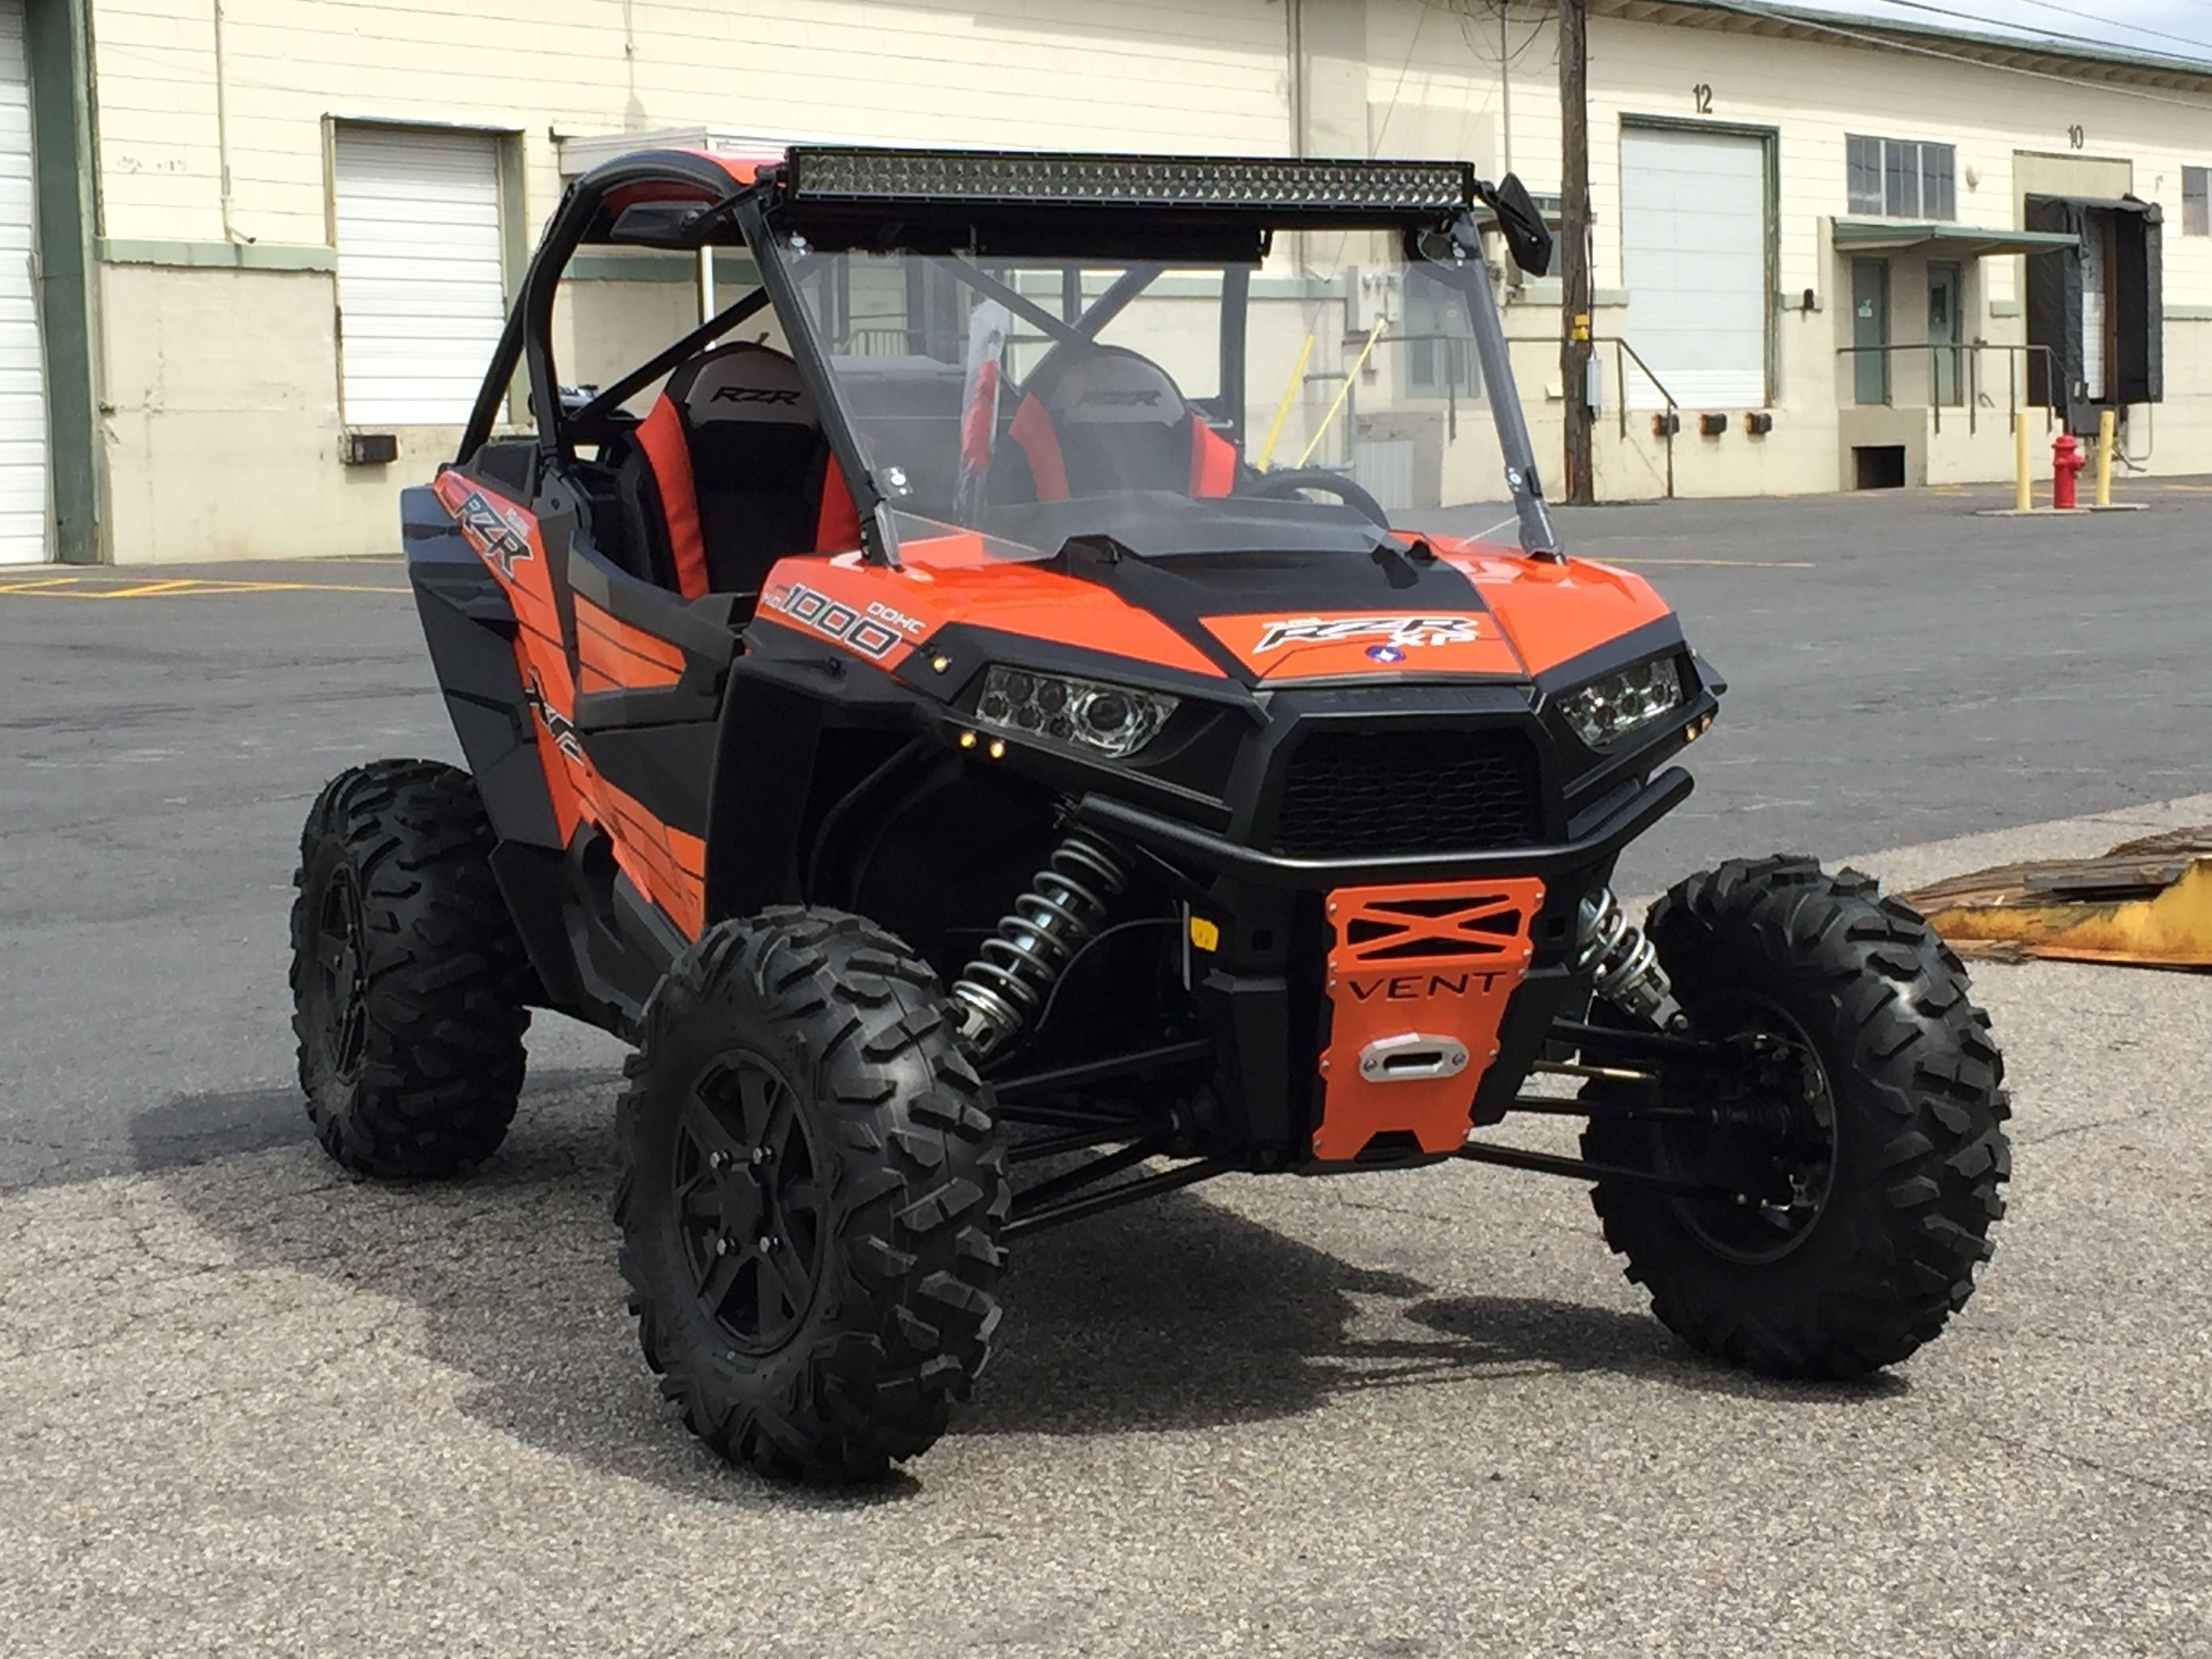 Polaris rzr xp 1000 4 seat coupe cage with roof windshield 42